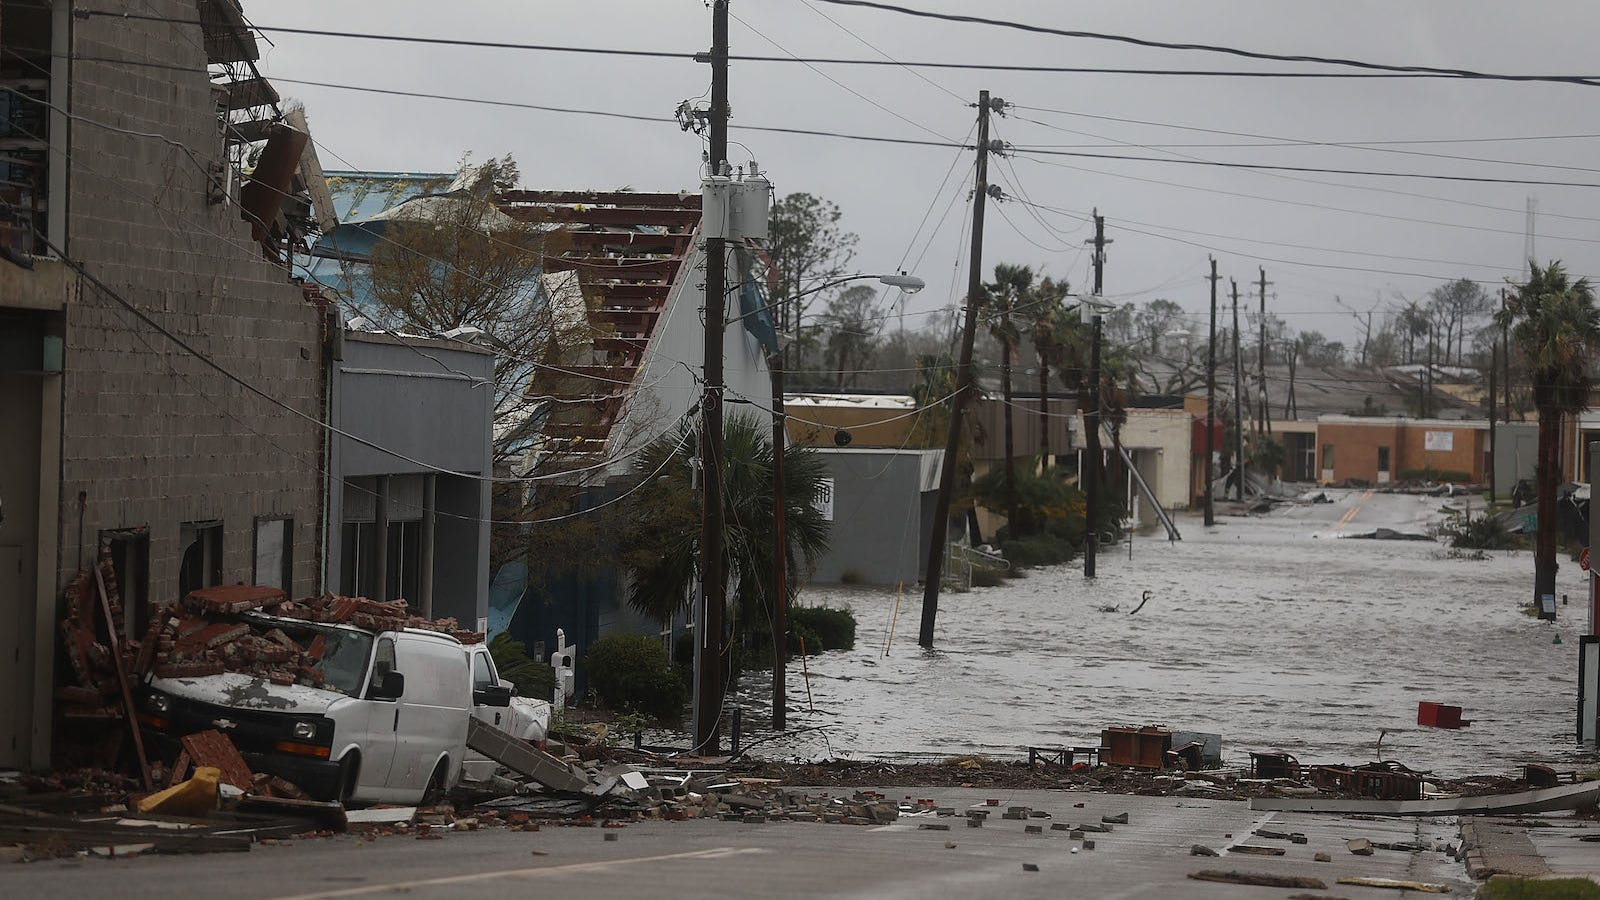 How to Help People Affected by Hurricane Michael